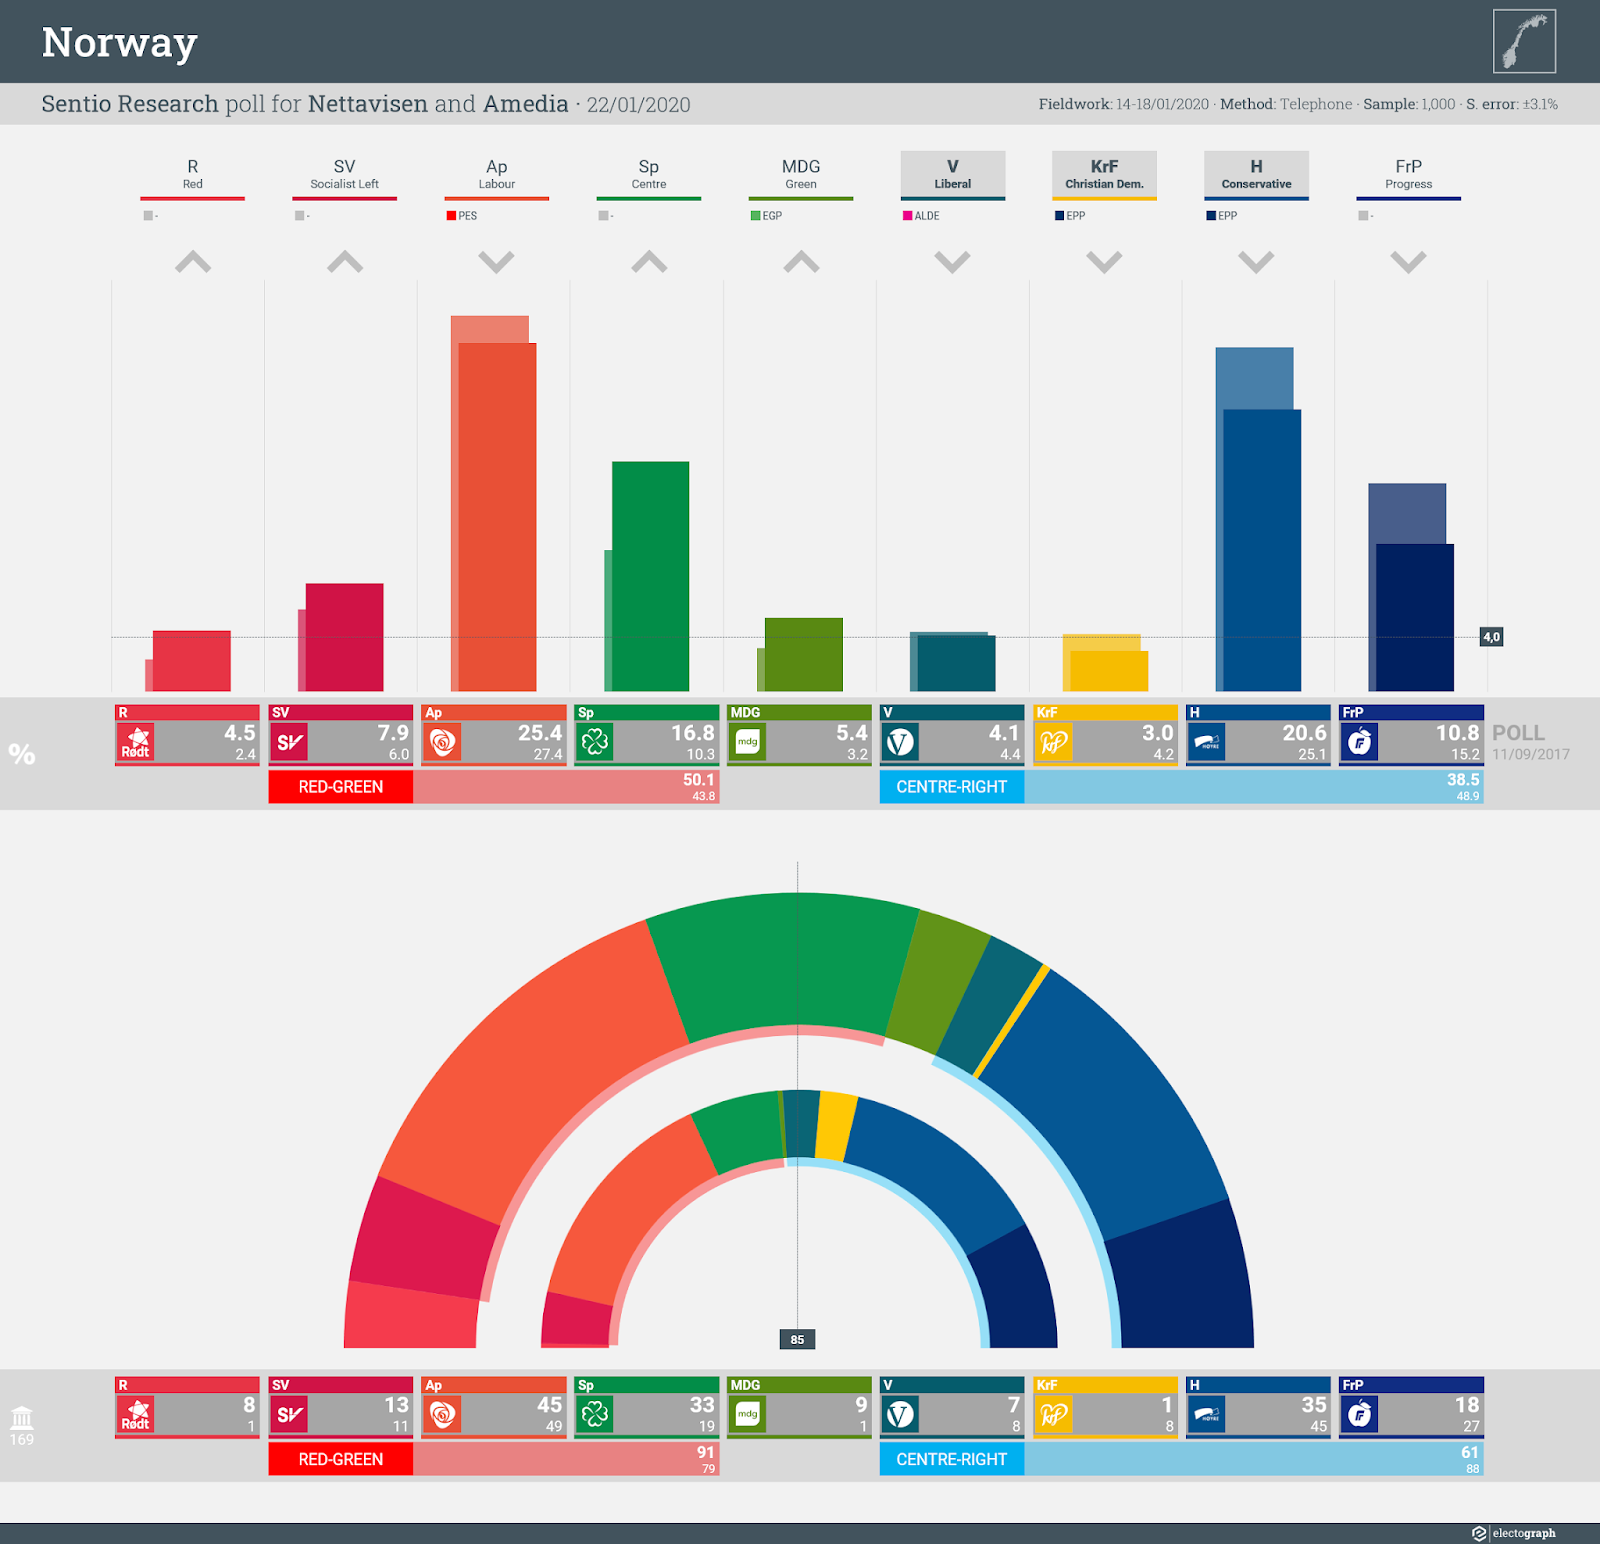 NORWAY: Sentio Research poll chart for Nettavisen and Amedia, 22 January 2020